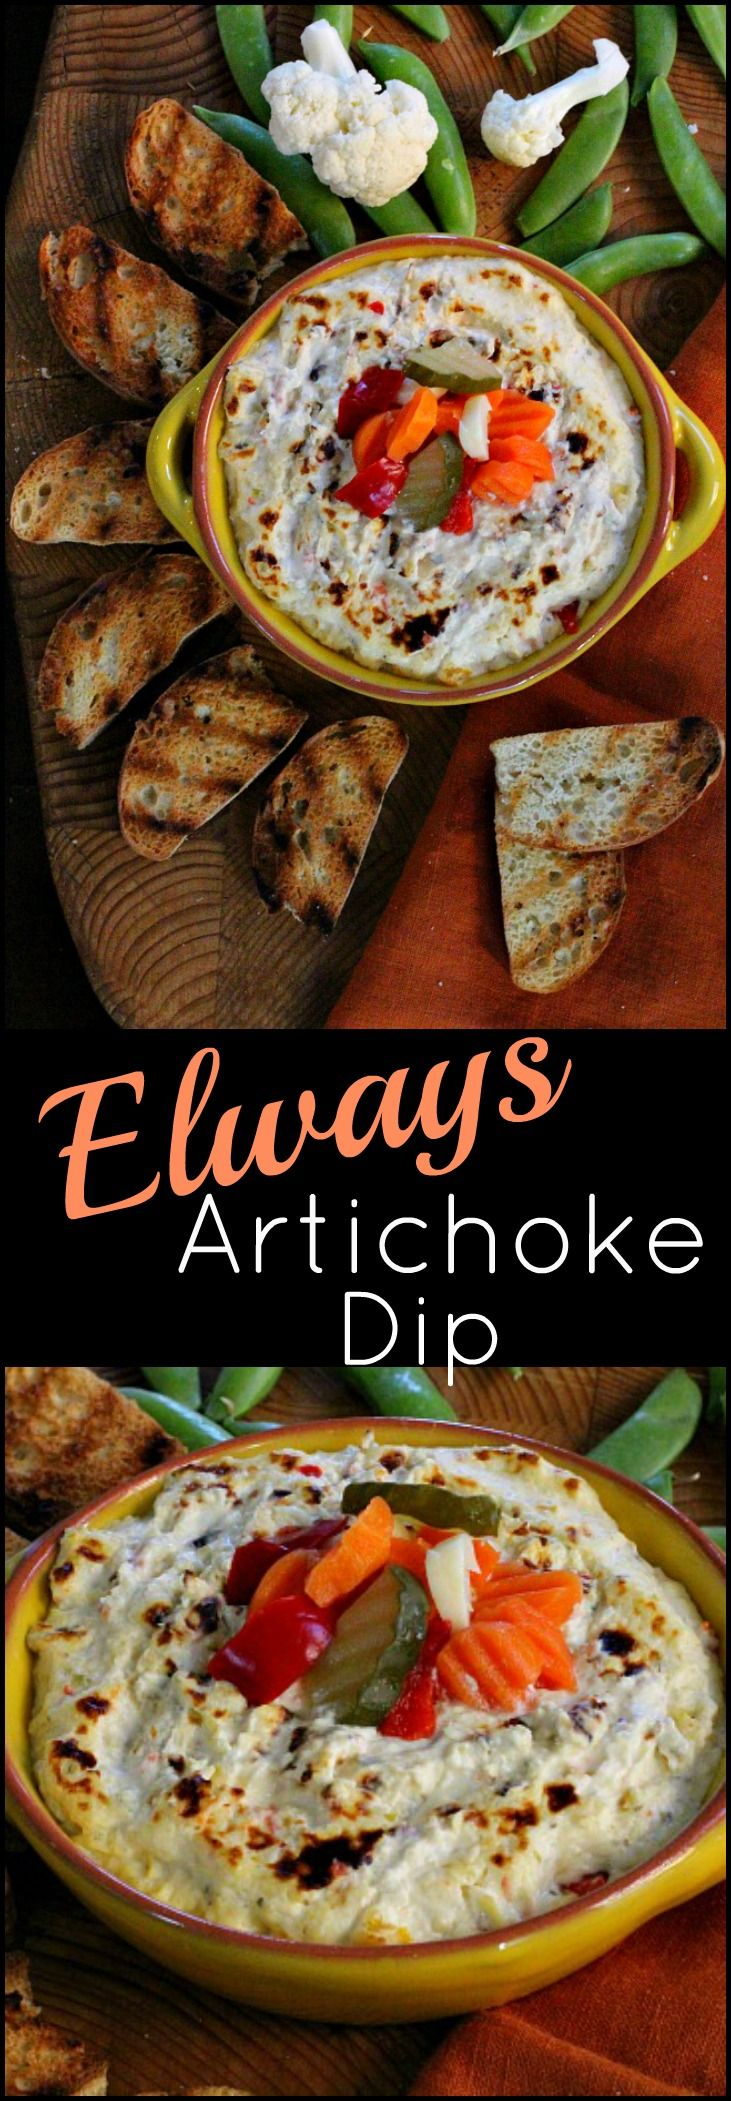 Elways Restaurant artichoke dip. Easy. Cream cheese and sour cream. Exciting with pickled vegetables. Perfect for a Football party crowd.